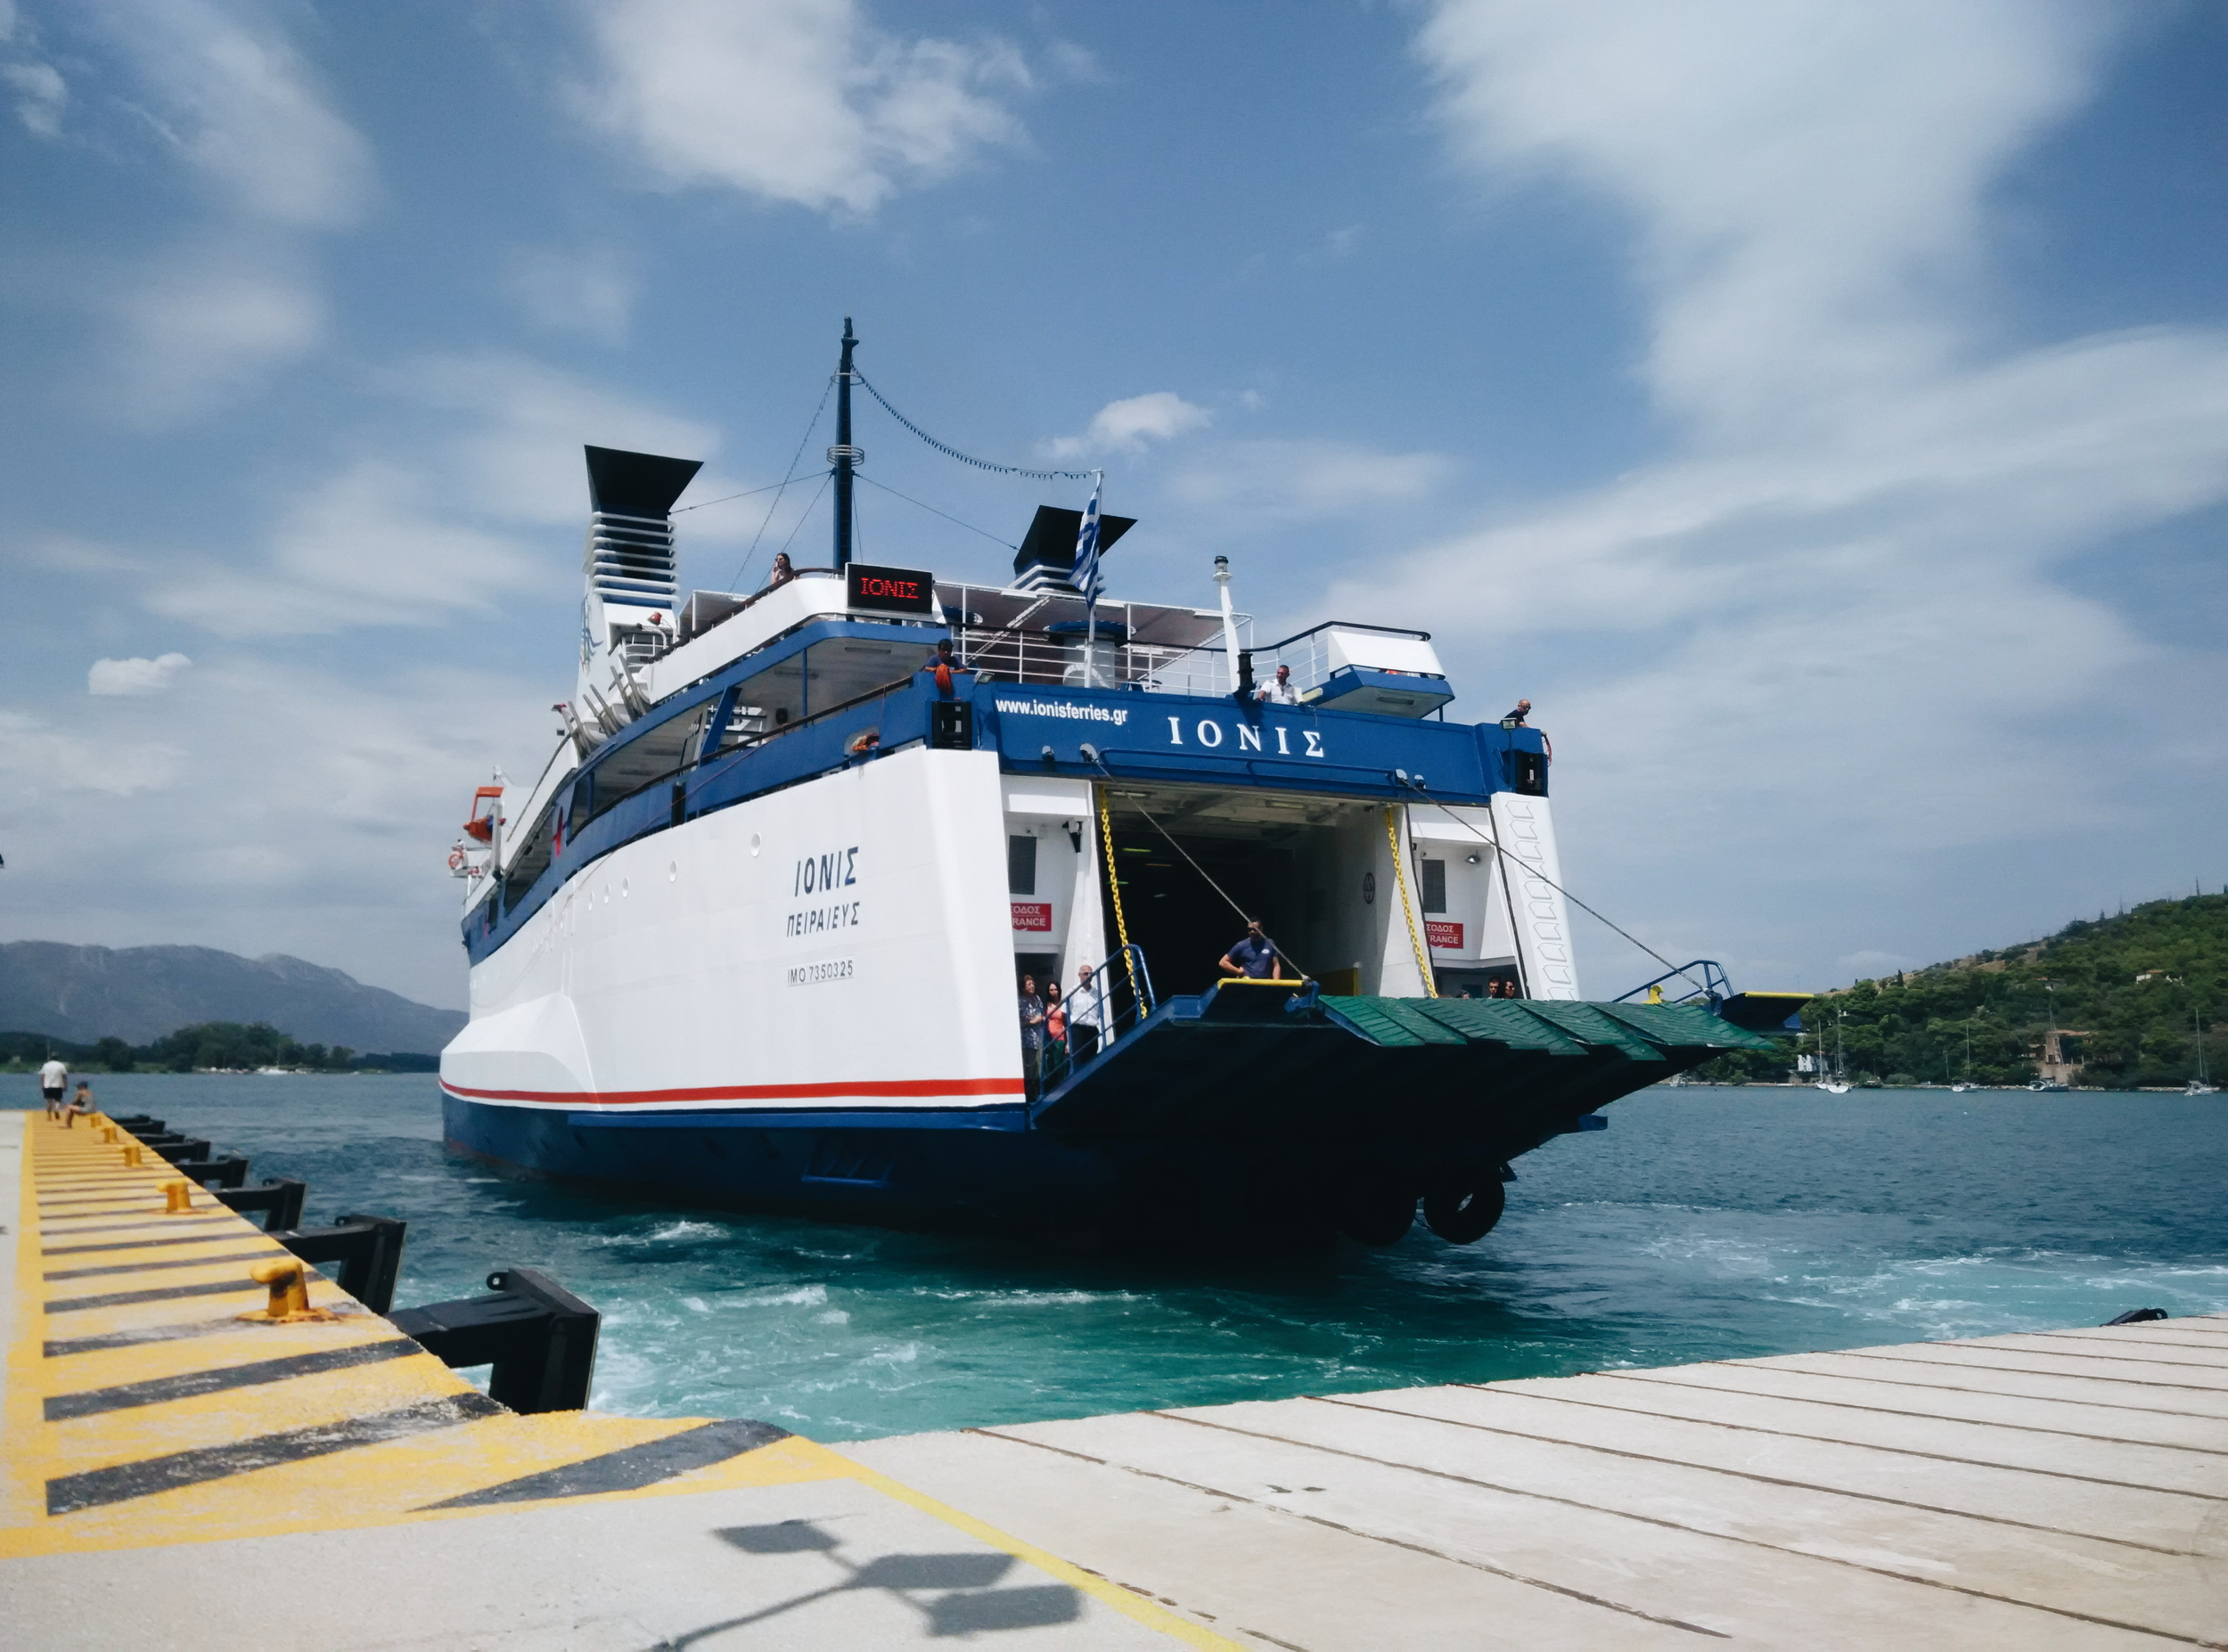 Ionis Ferry - arriving at Poros!